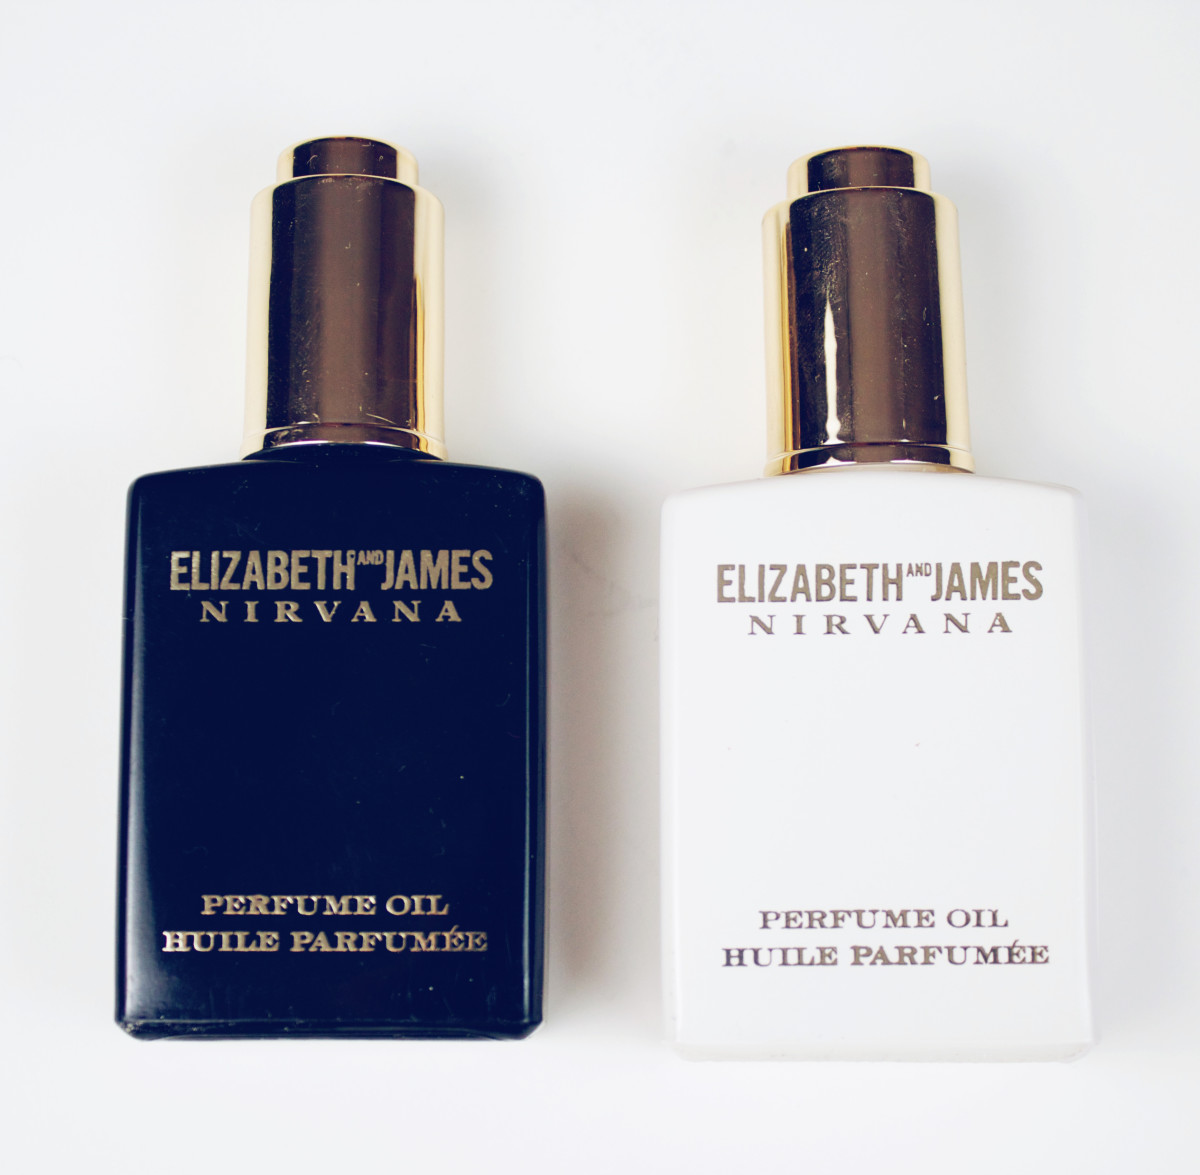 Elizabeth and James Nirvana Perfume Oils